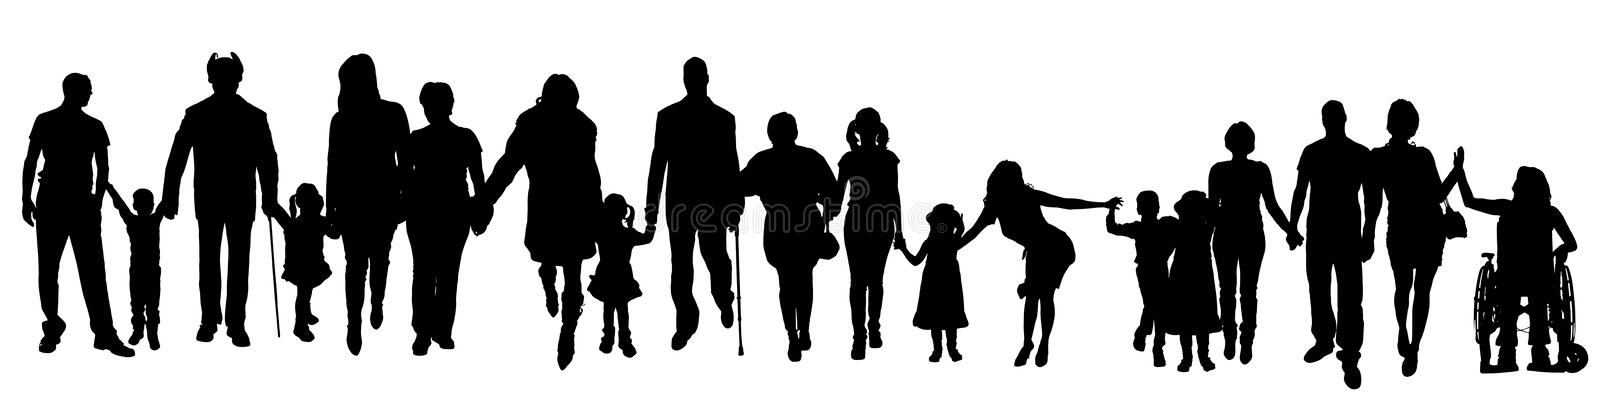 Vector silhouette of a group of people. vector illustration